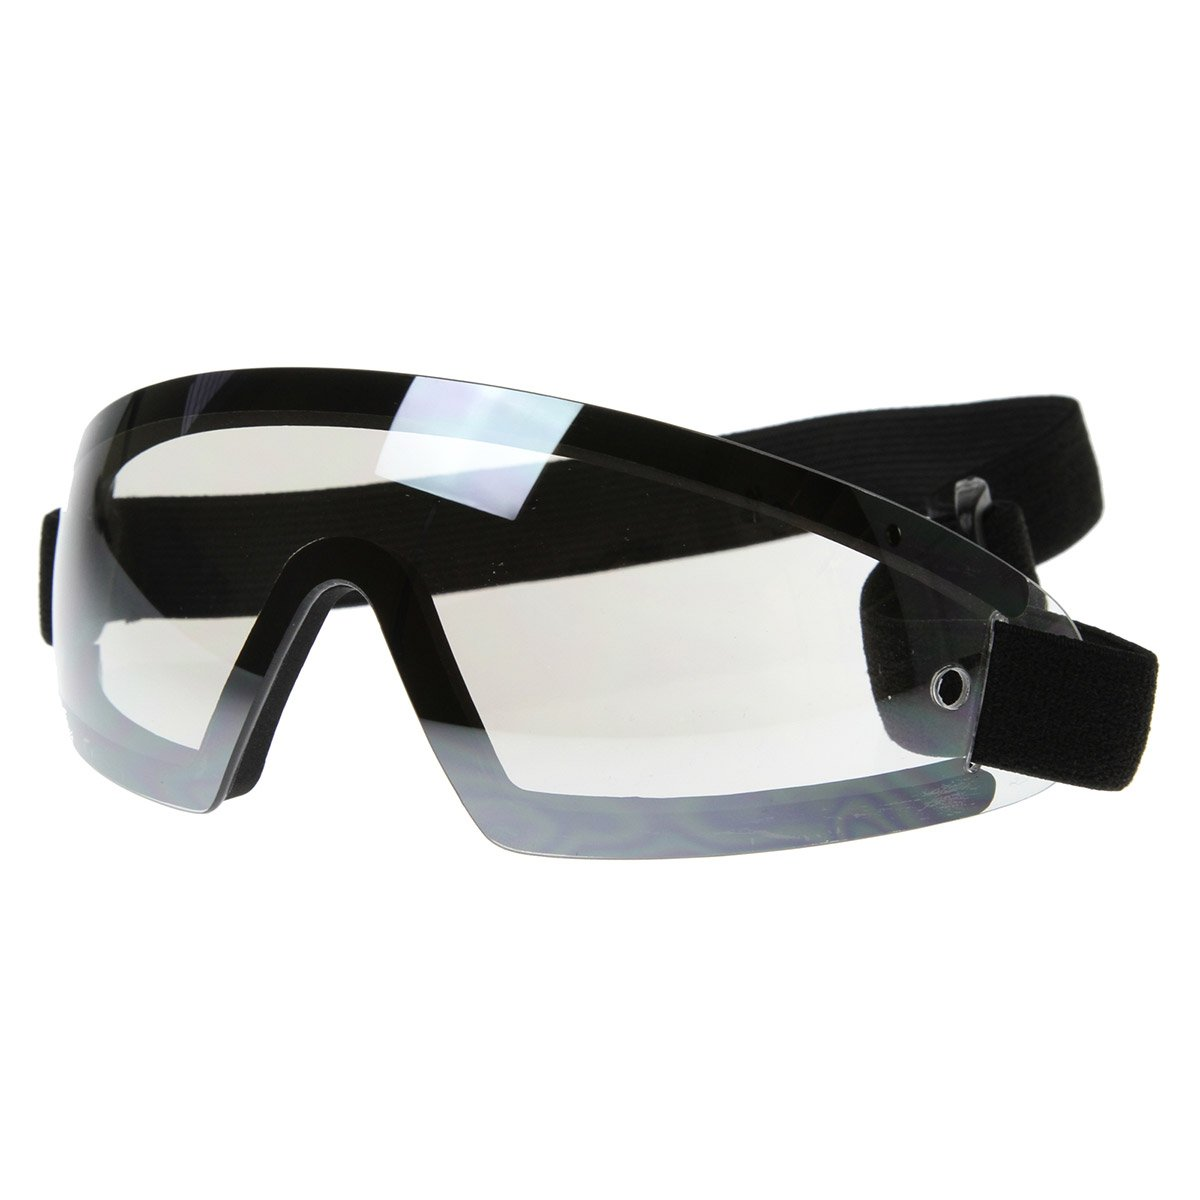 Frameless Protective Eyewear UV400 | Sports Shield Goggles with Adjustable Strap (Black Clear)